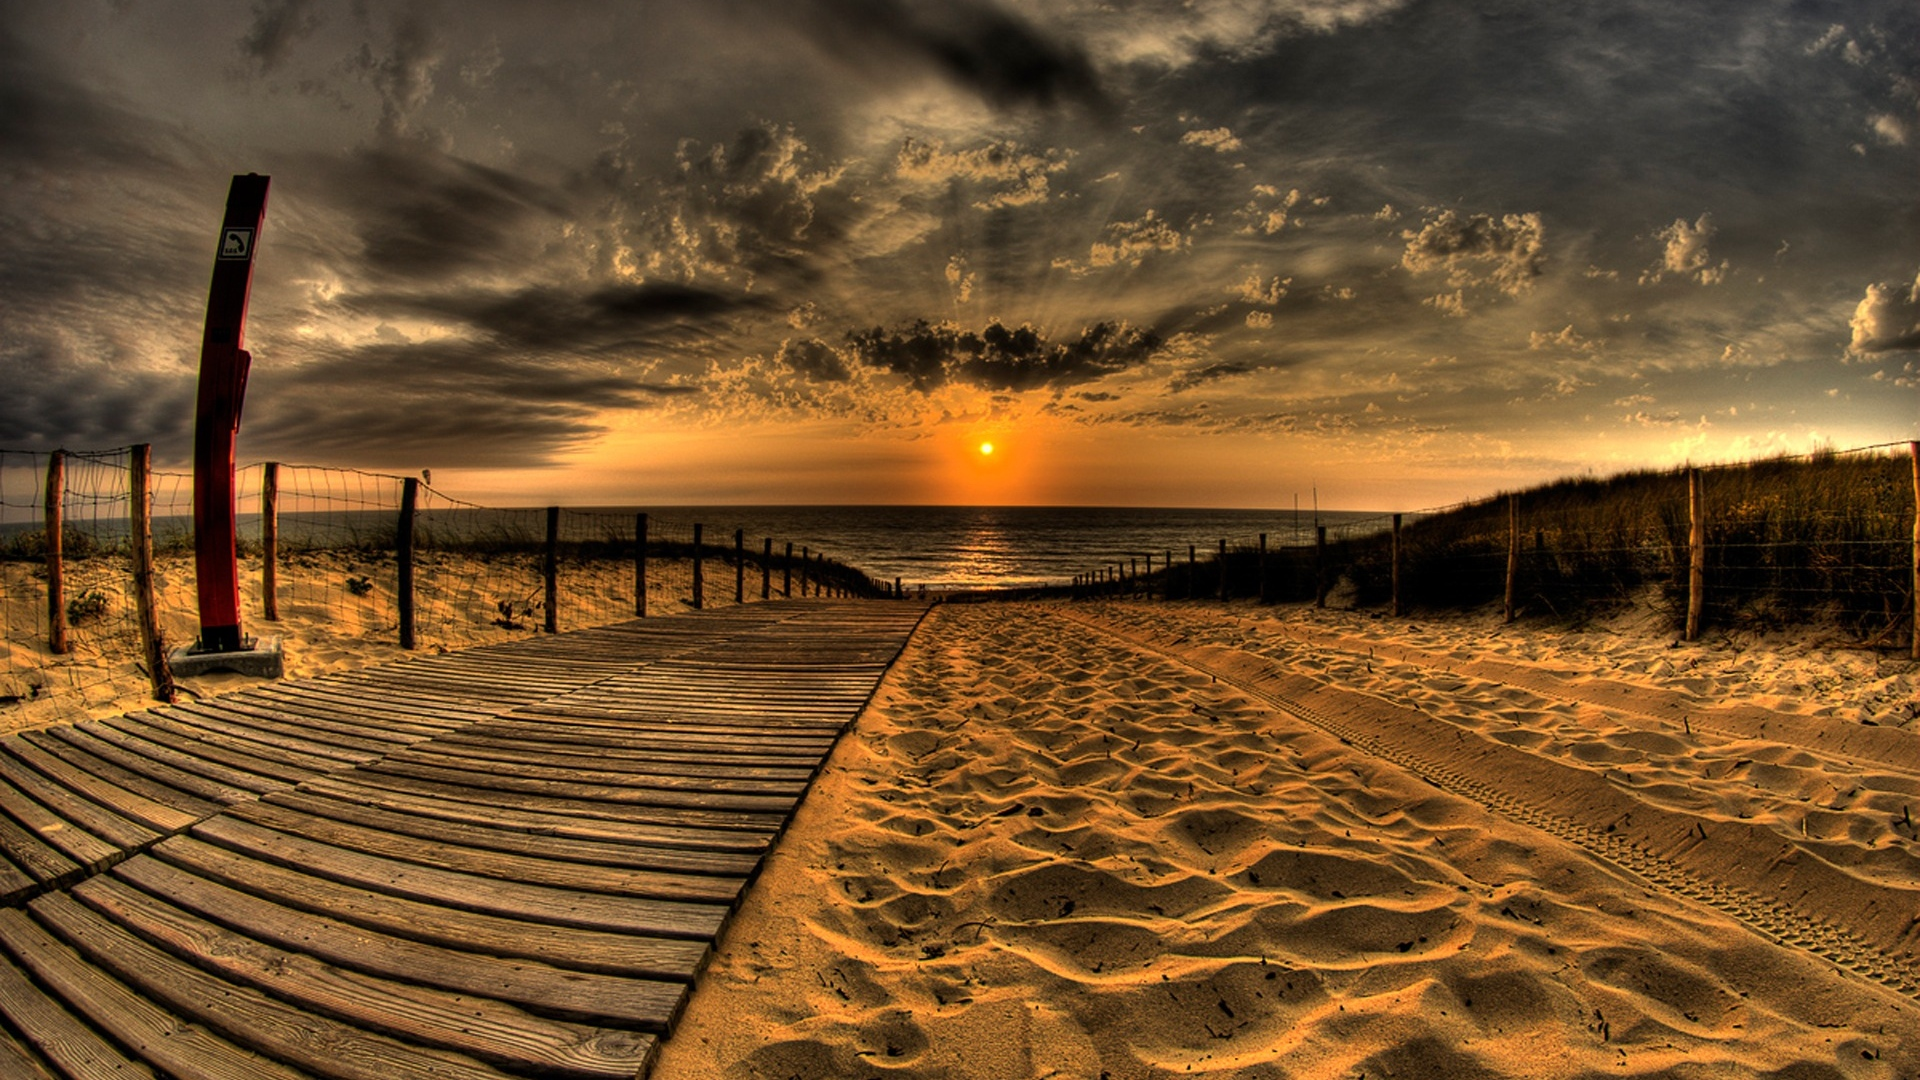 Download Wallpaper 1920x1080 Beach Sand Road Traces Fence Sun